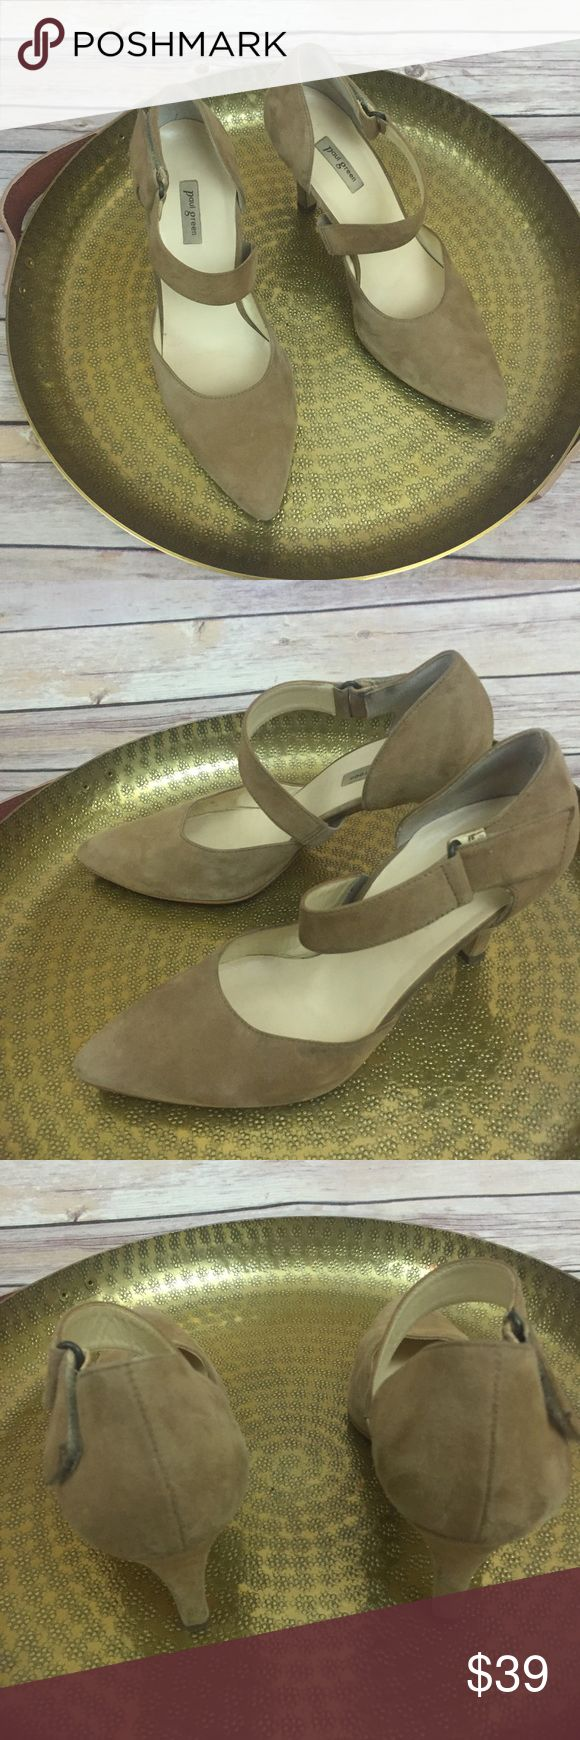 Paul Green tan suede pointed toe heels, 6.5 These Paul Green tan suede pointed toe pumps are in good preowned condition and have a Velcro strap closure.  They are a size 6.5. Paul Green Shoes Heels